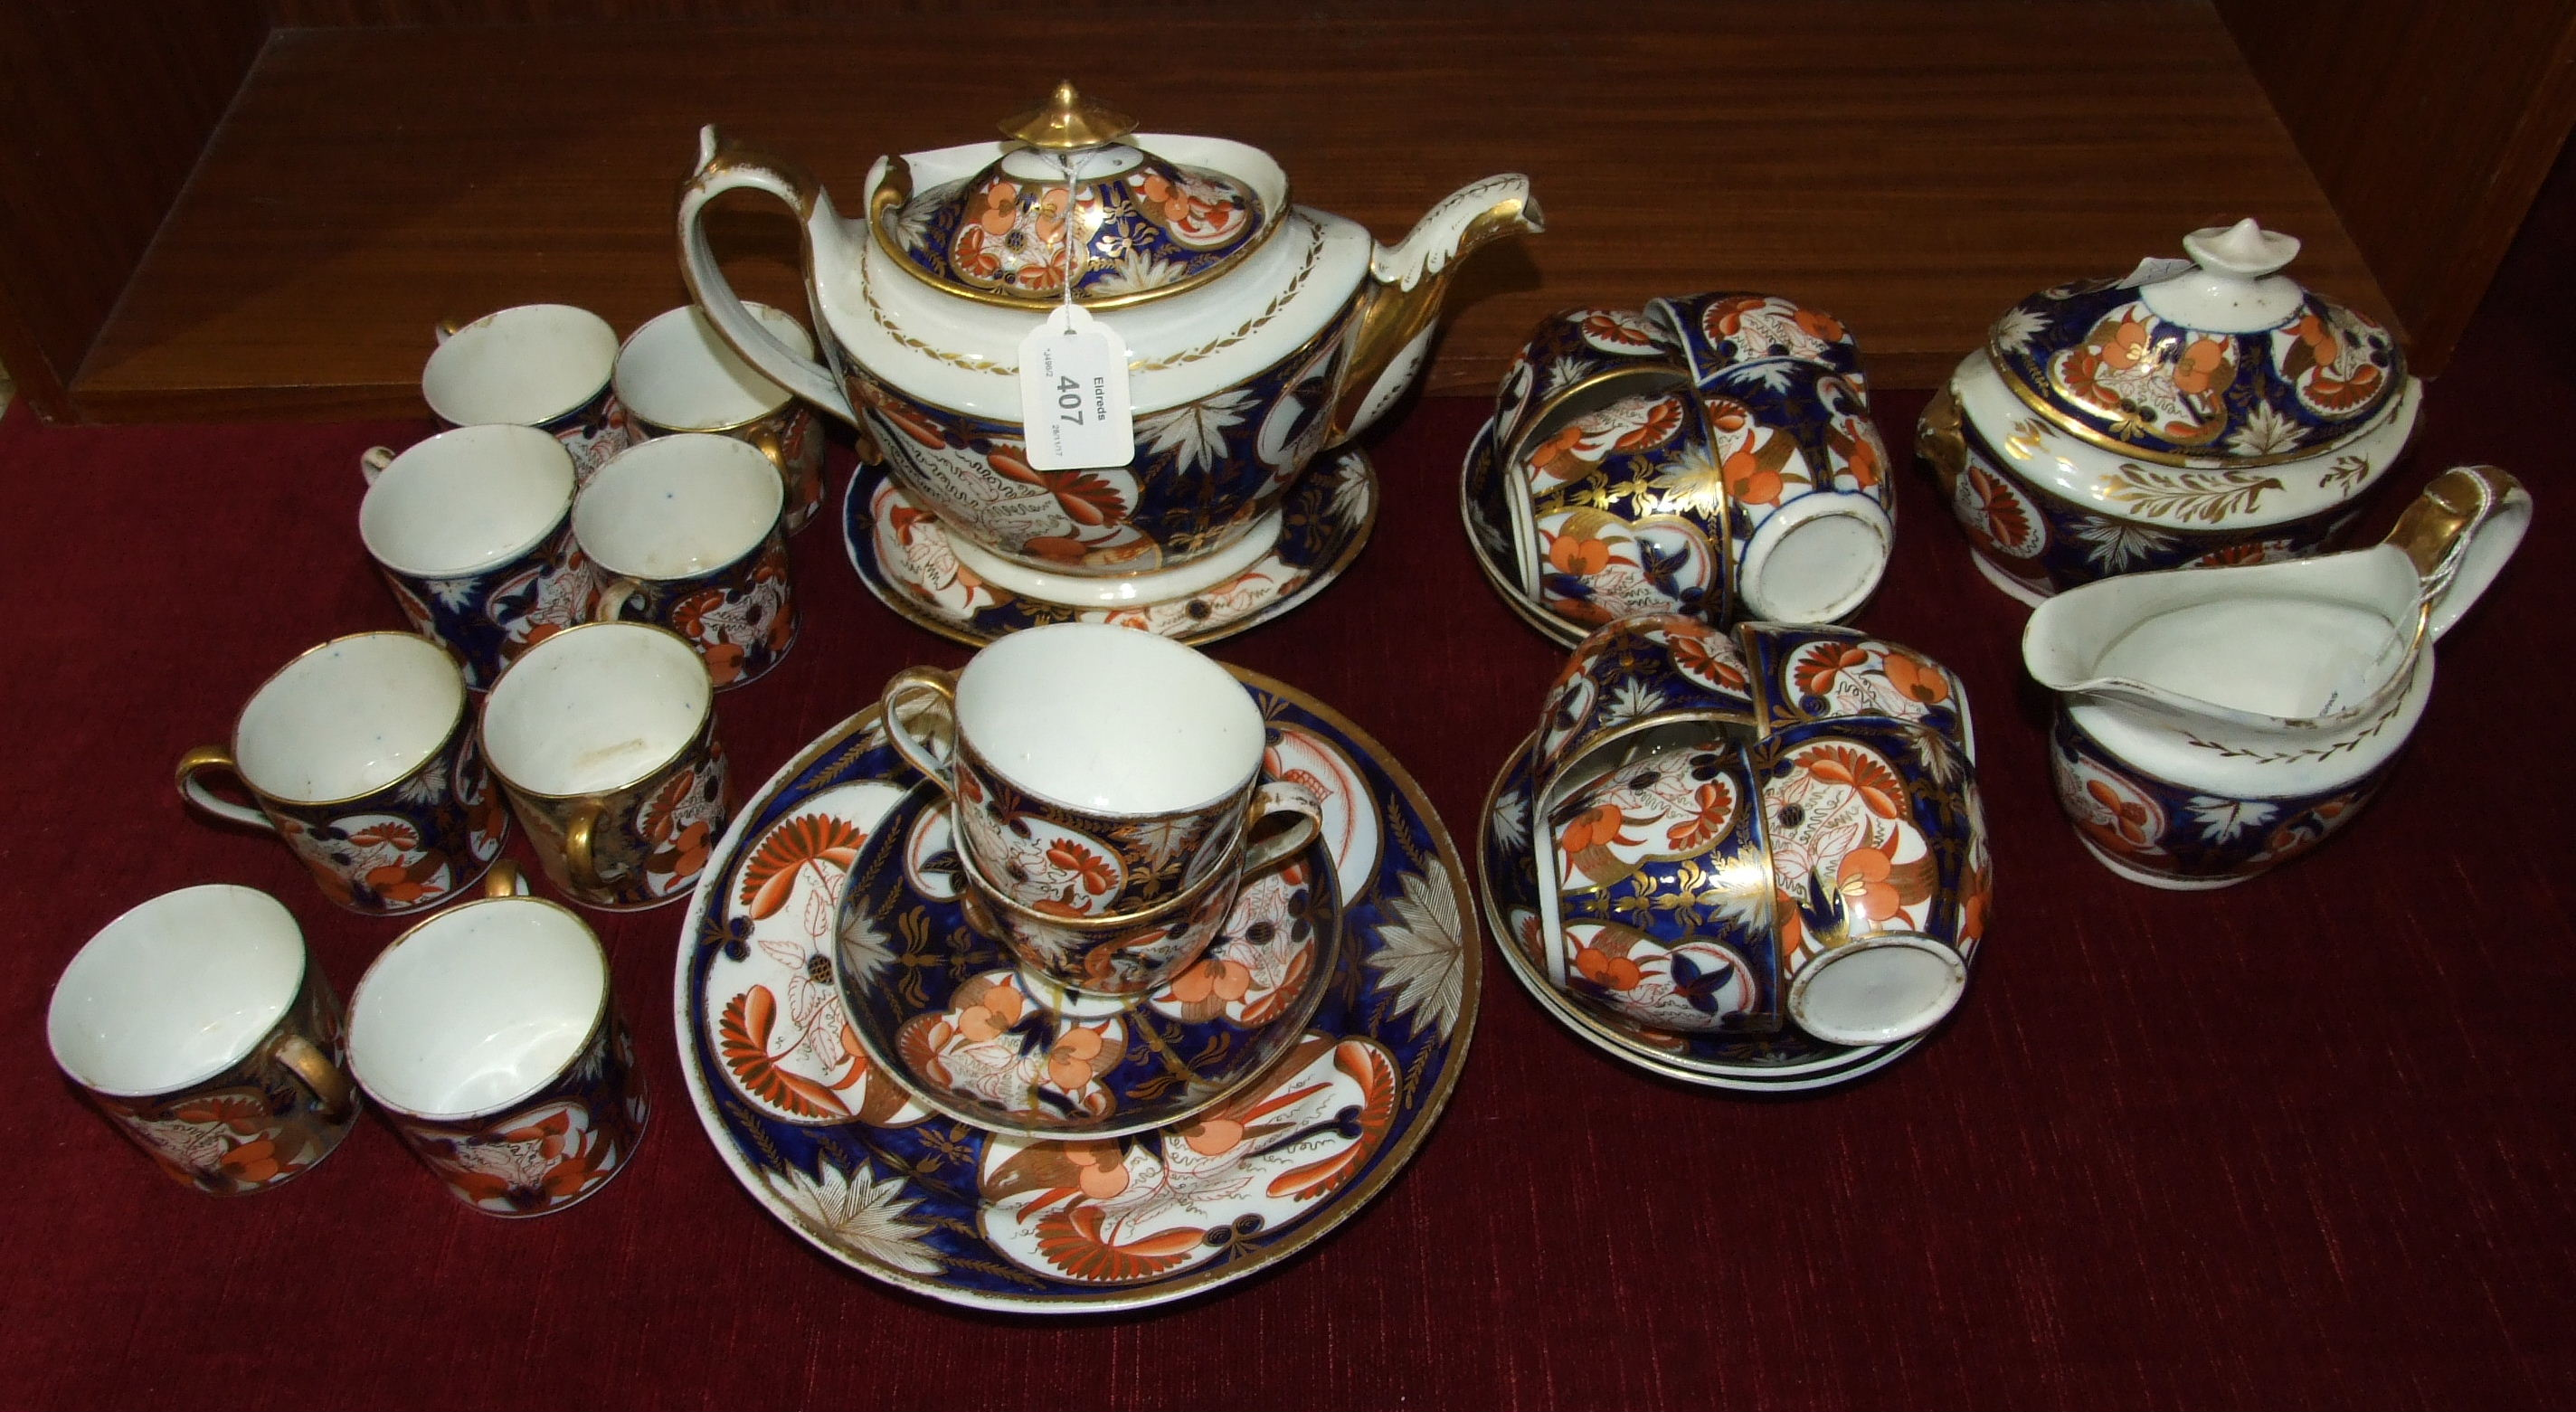 Lot 407 - An early-19th century English porcelain Imari pattern part tea service, thirty pieces.